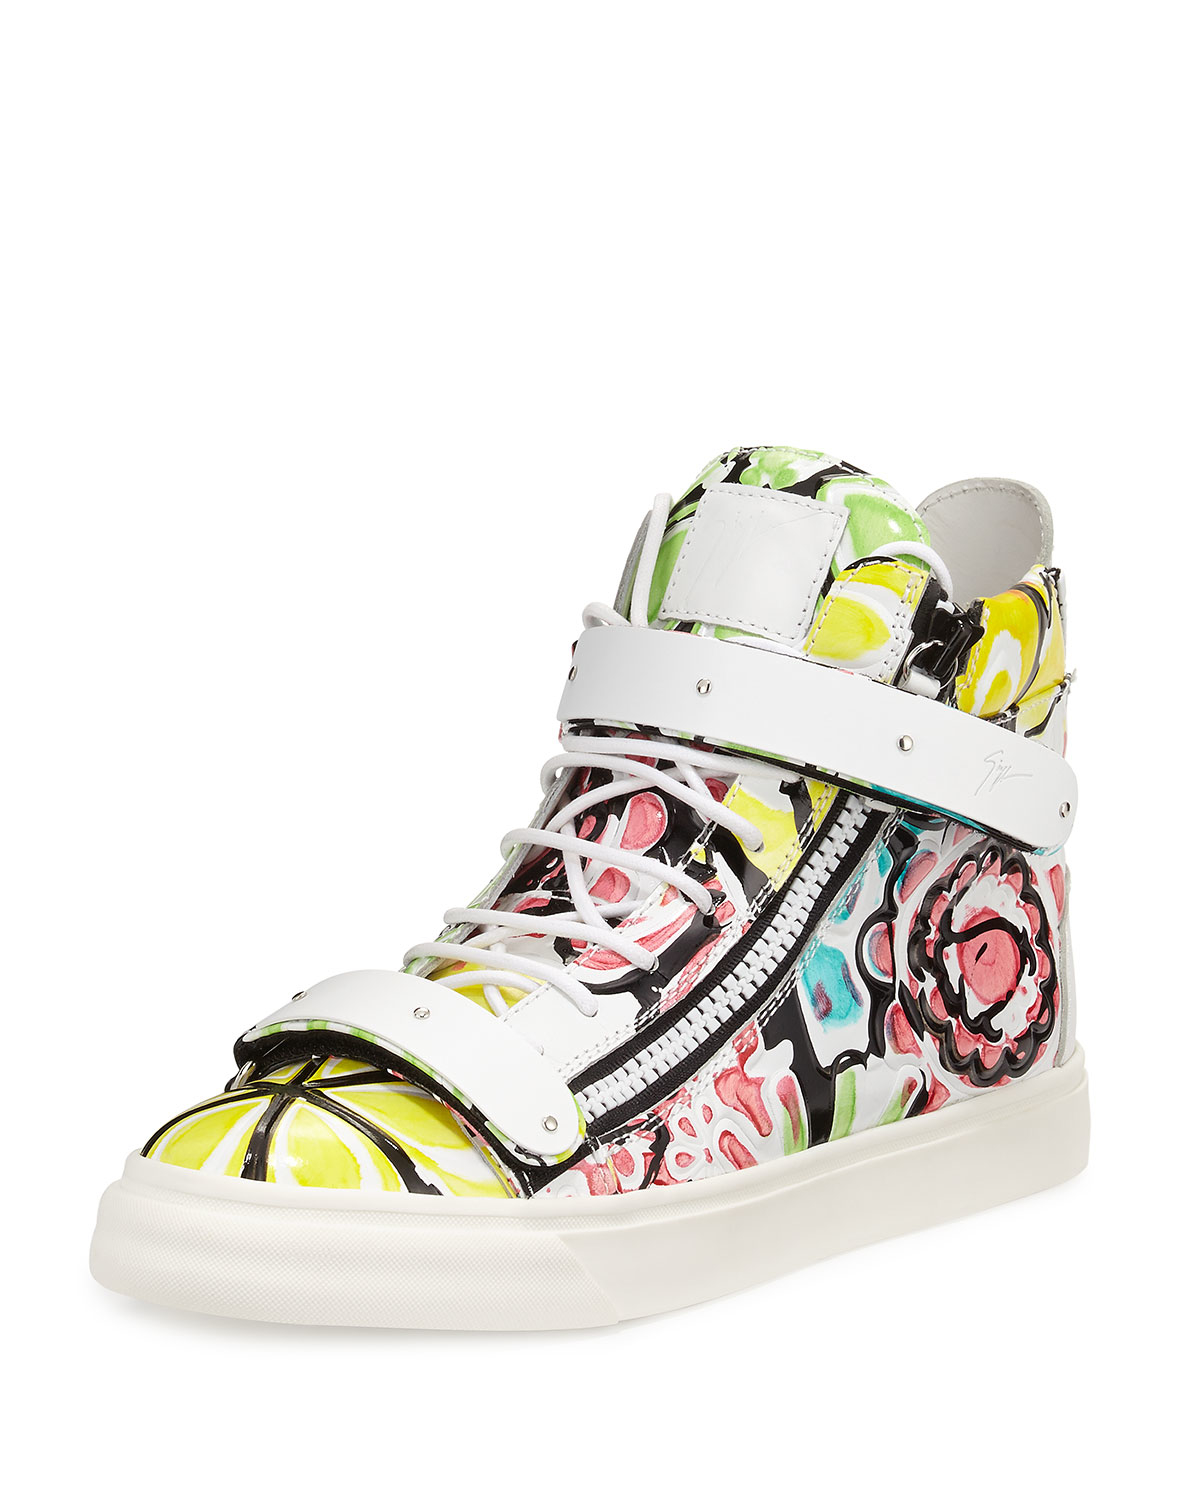 611ea864c62bb Giuseppe Zanotti Floral-Print High-Top Sneakers in White for Men - Lyst